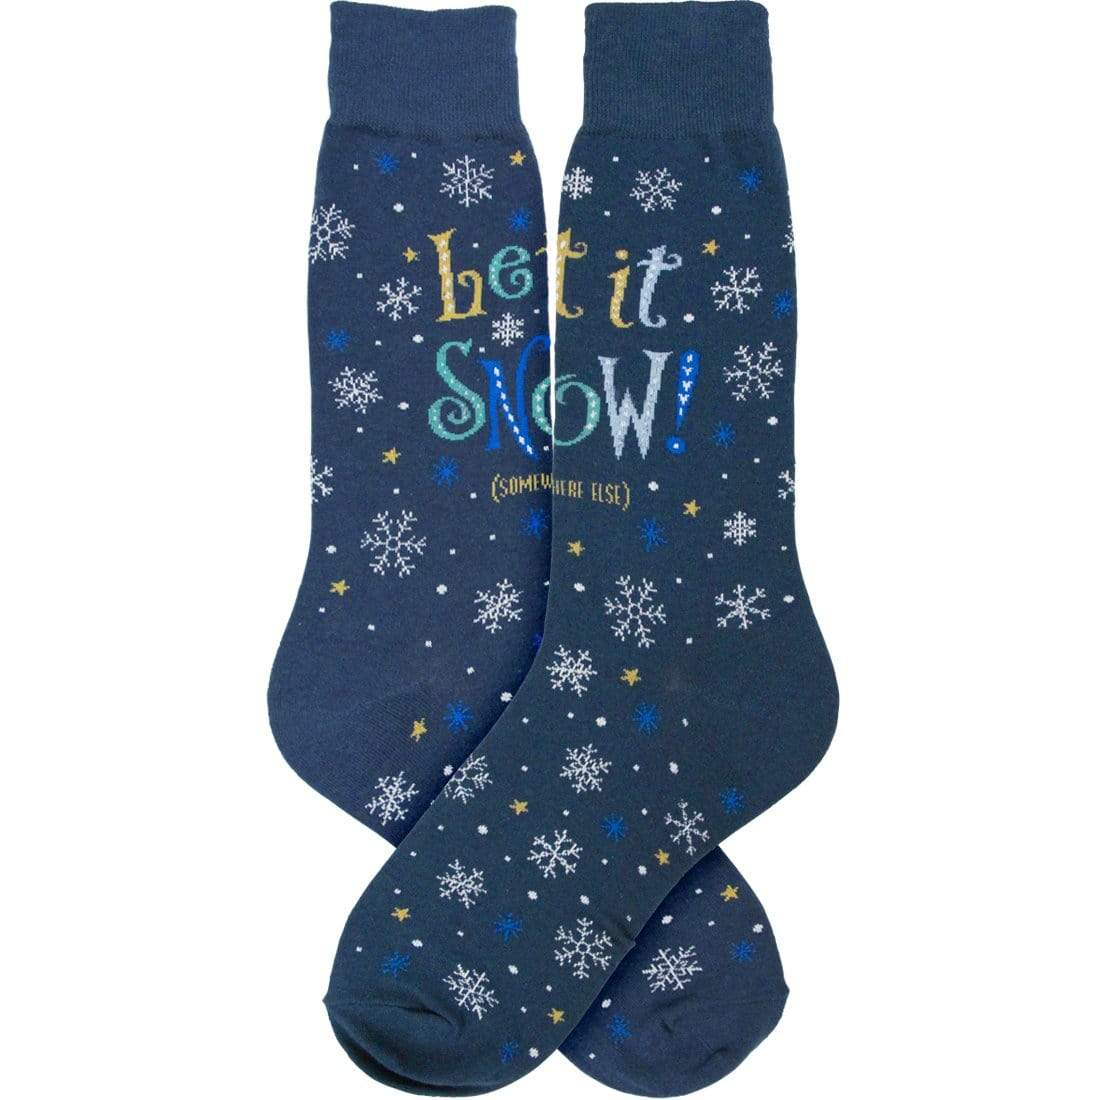 Let It Snow Blue Men's Crew Socks